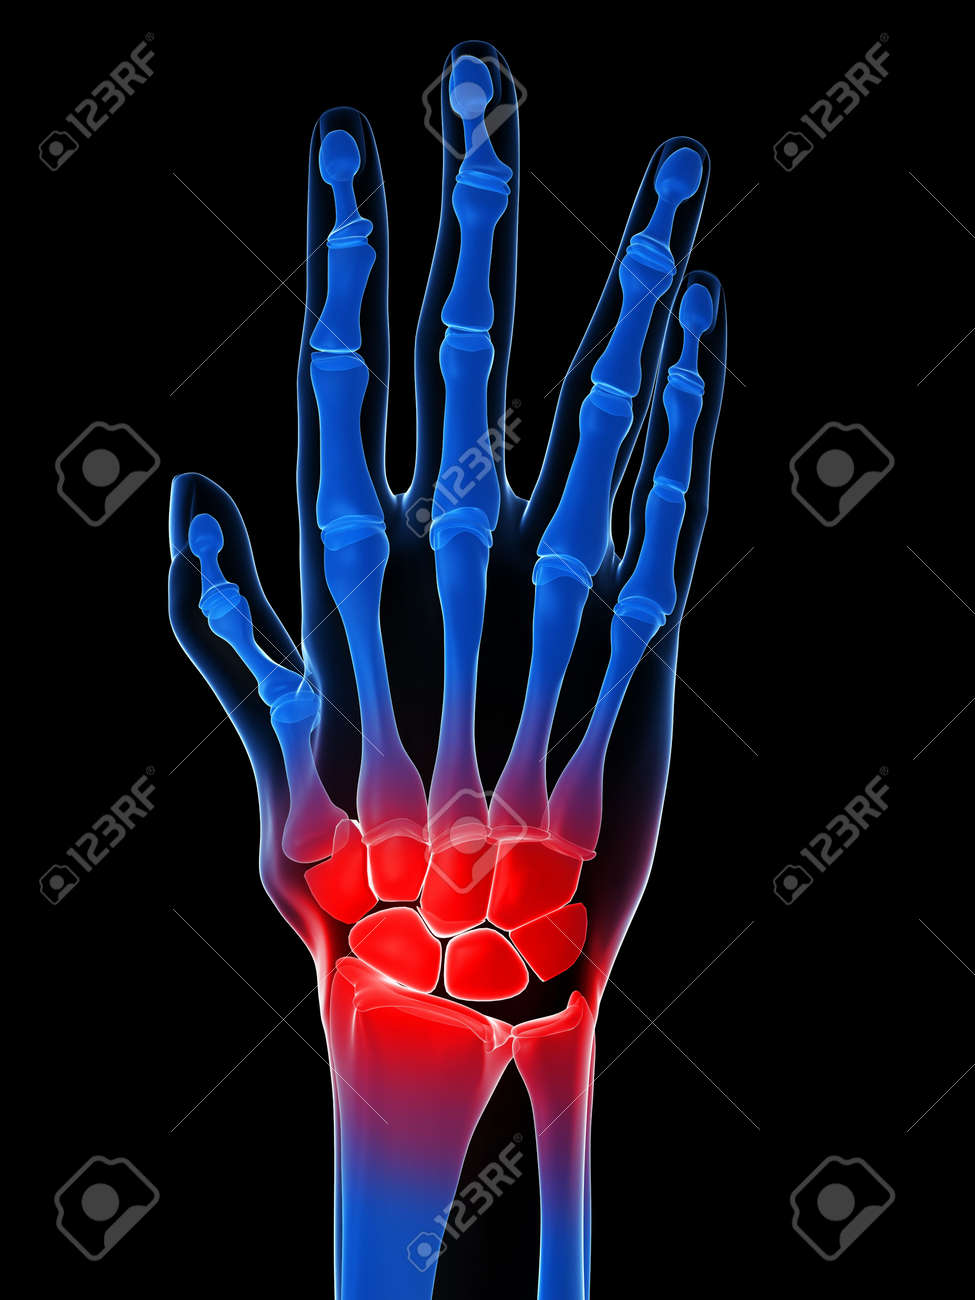 Human X-ray Hand - Arthritis Stock Photo, Picture And Royalty Free ...